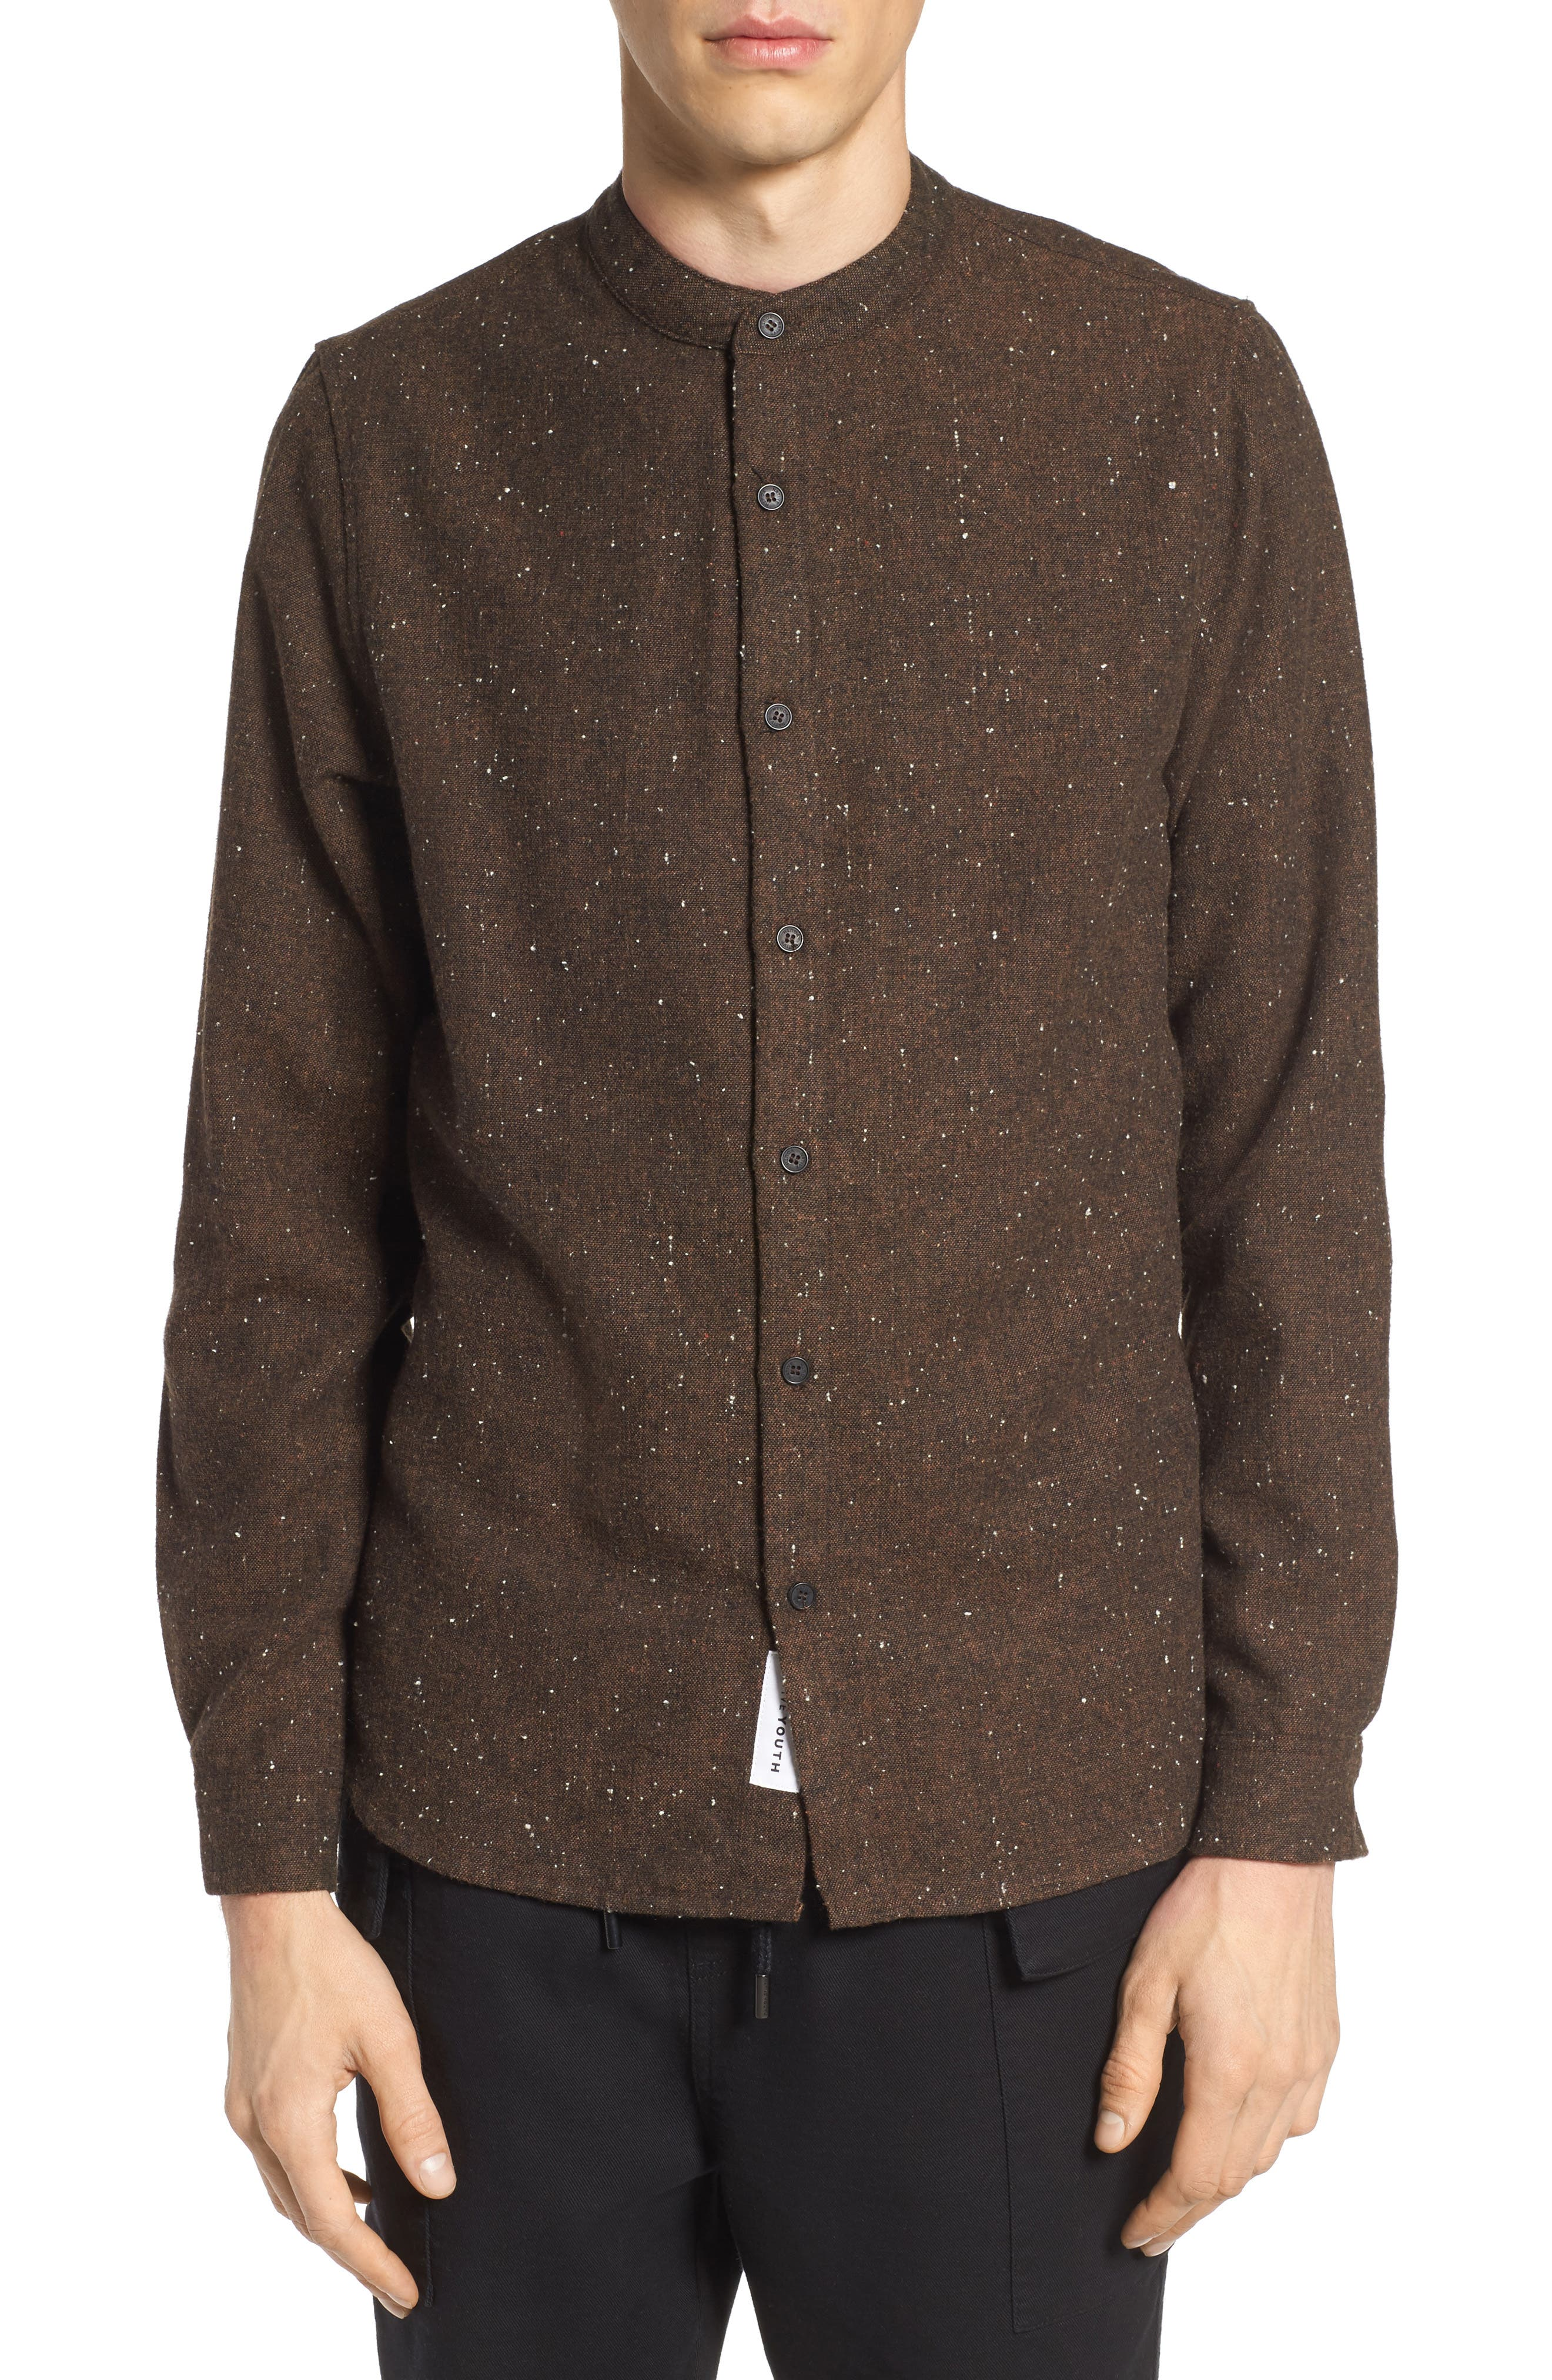 Alford Nep Shirt,                         Main,                         color, Brown